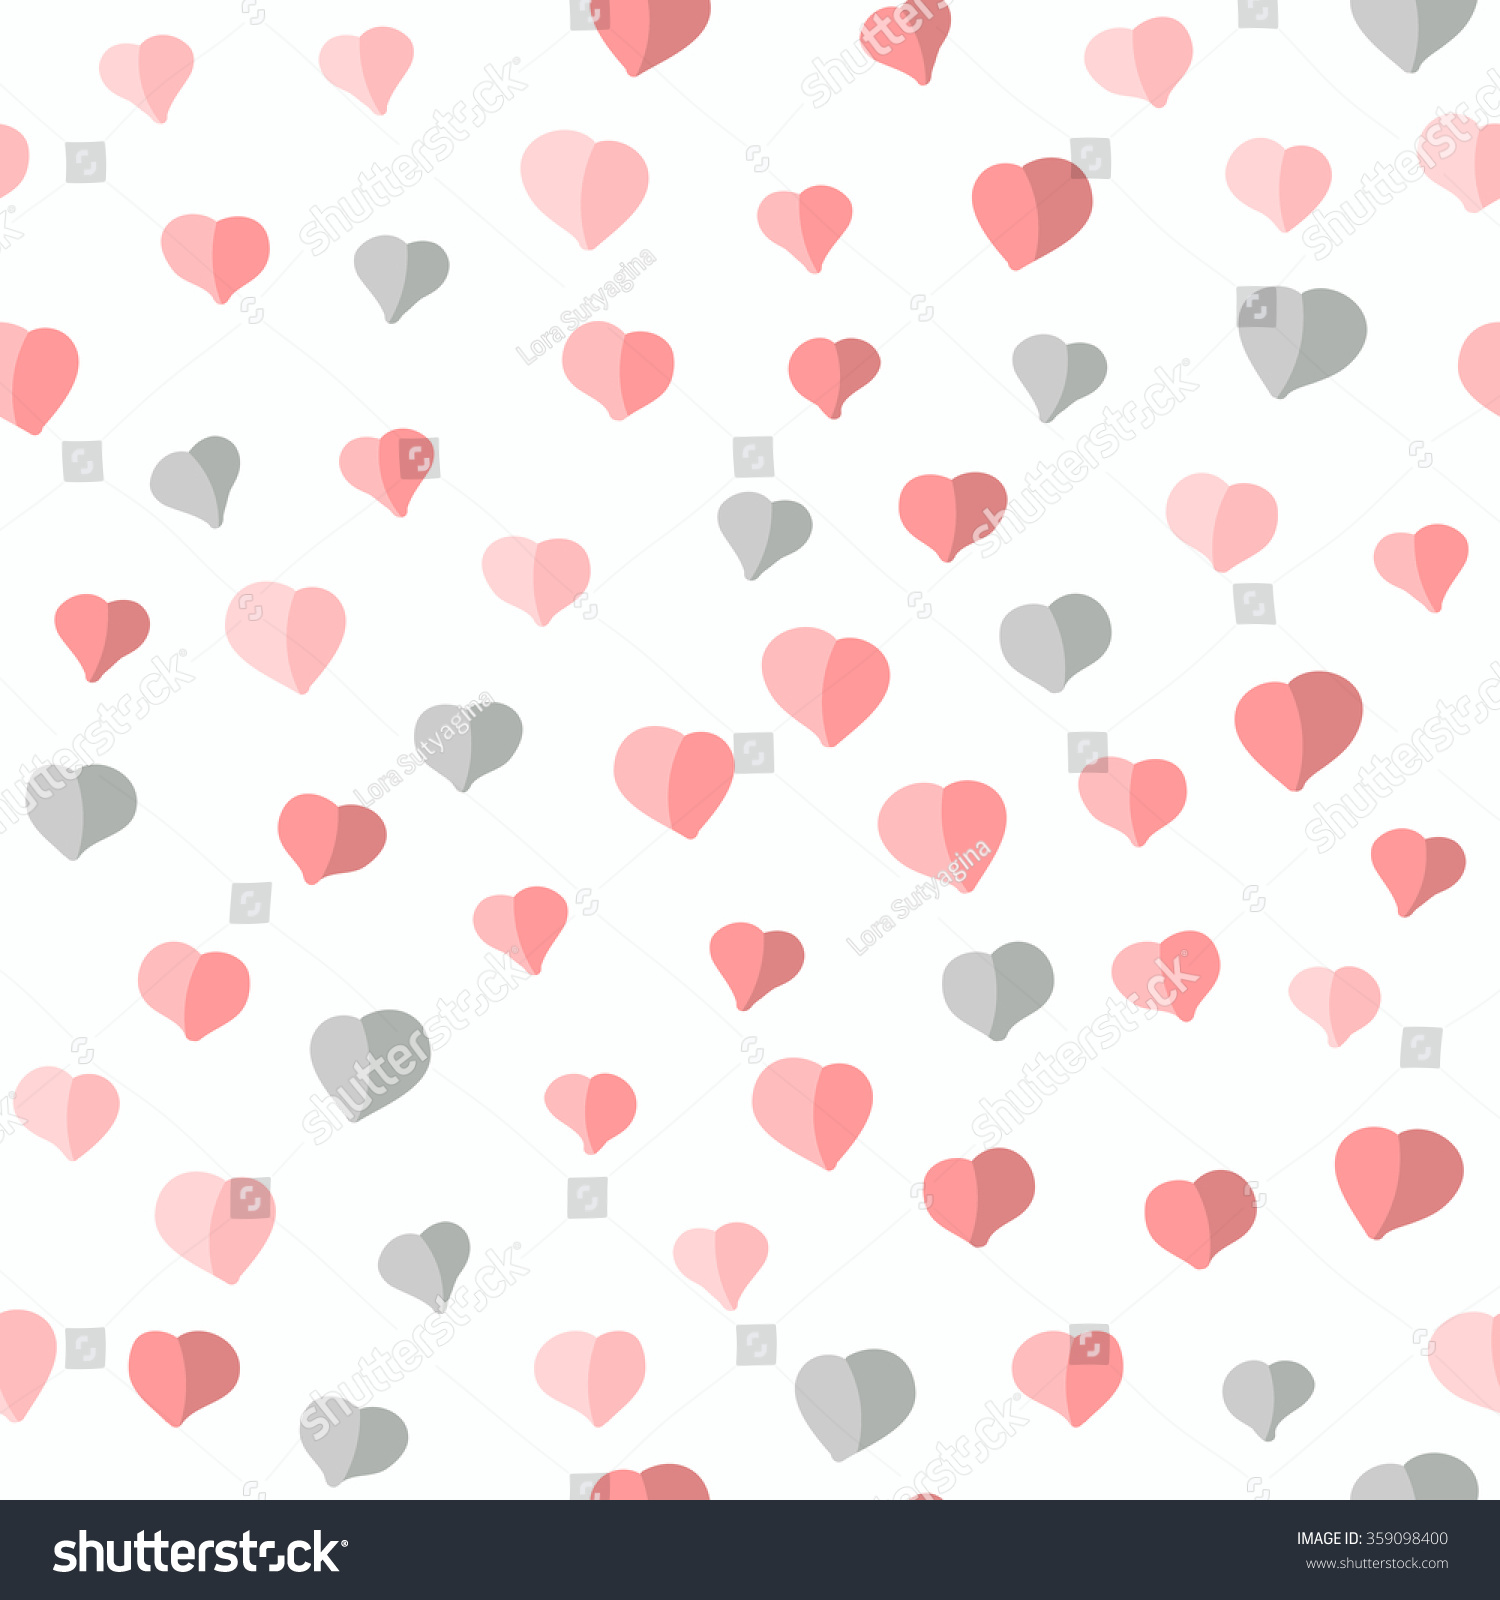 Gray And Pink Hearts: Seamless Pattern Hearts Valentines Day Background Stock